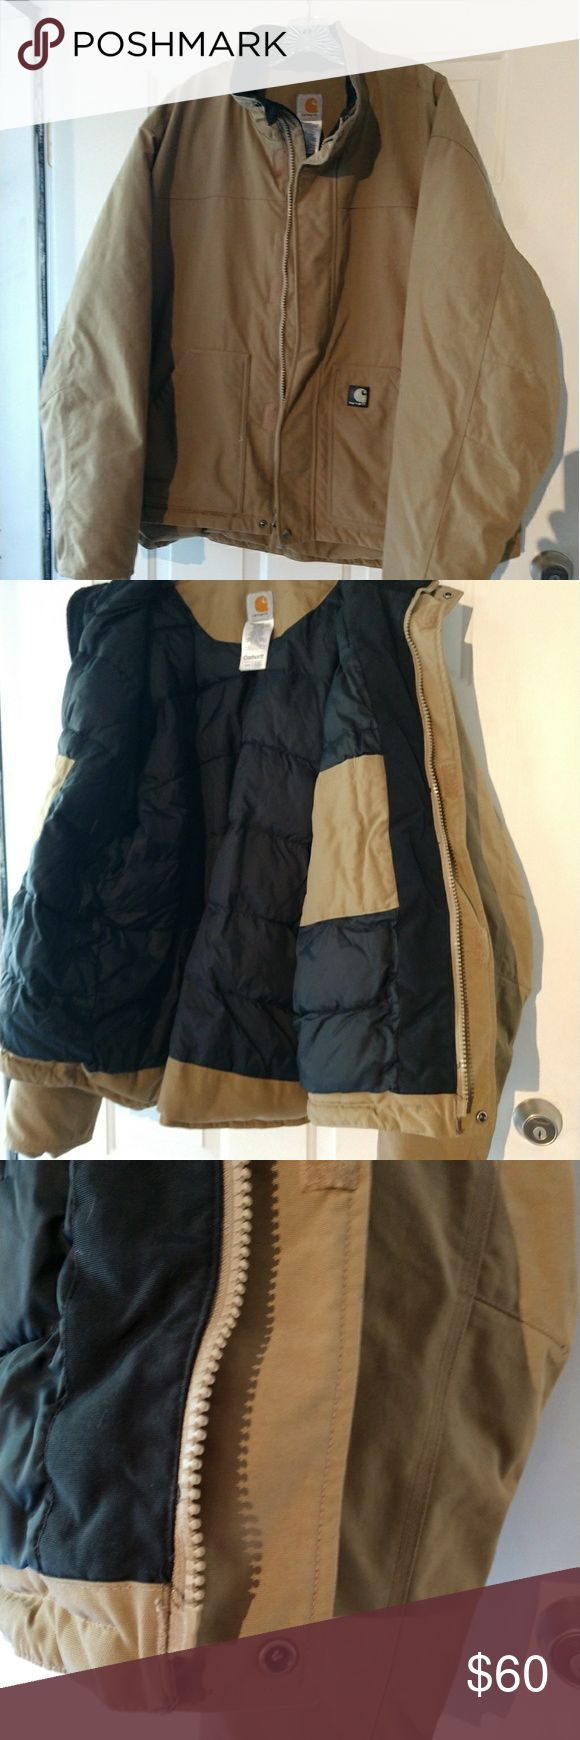 Carhartt Jacket This jacket is in very good used condition. Gently used condition. Perfect for Winter. Very warm. Not a light jacket. Priced to sell. Carhartt Jackets & Coats